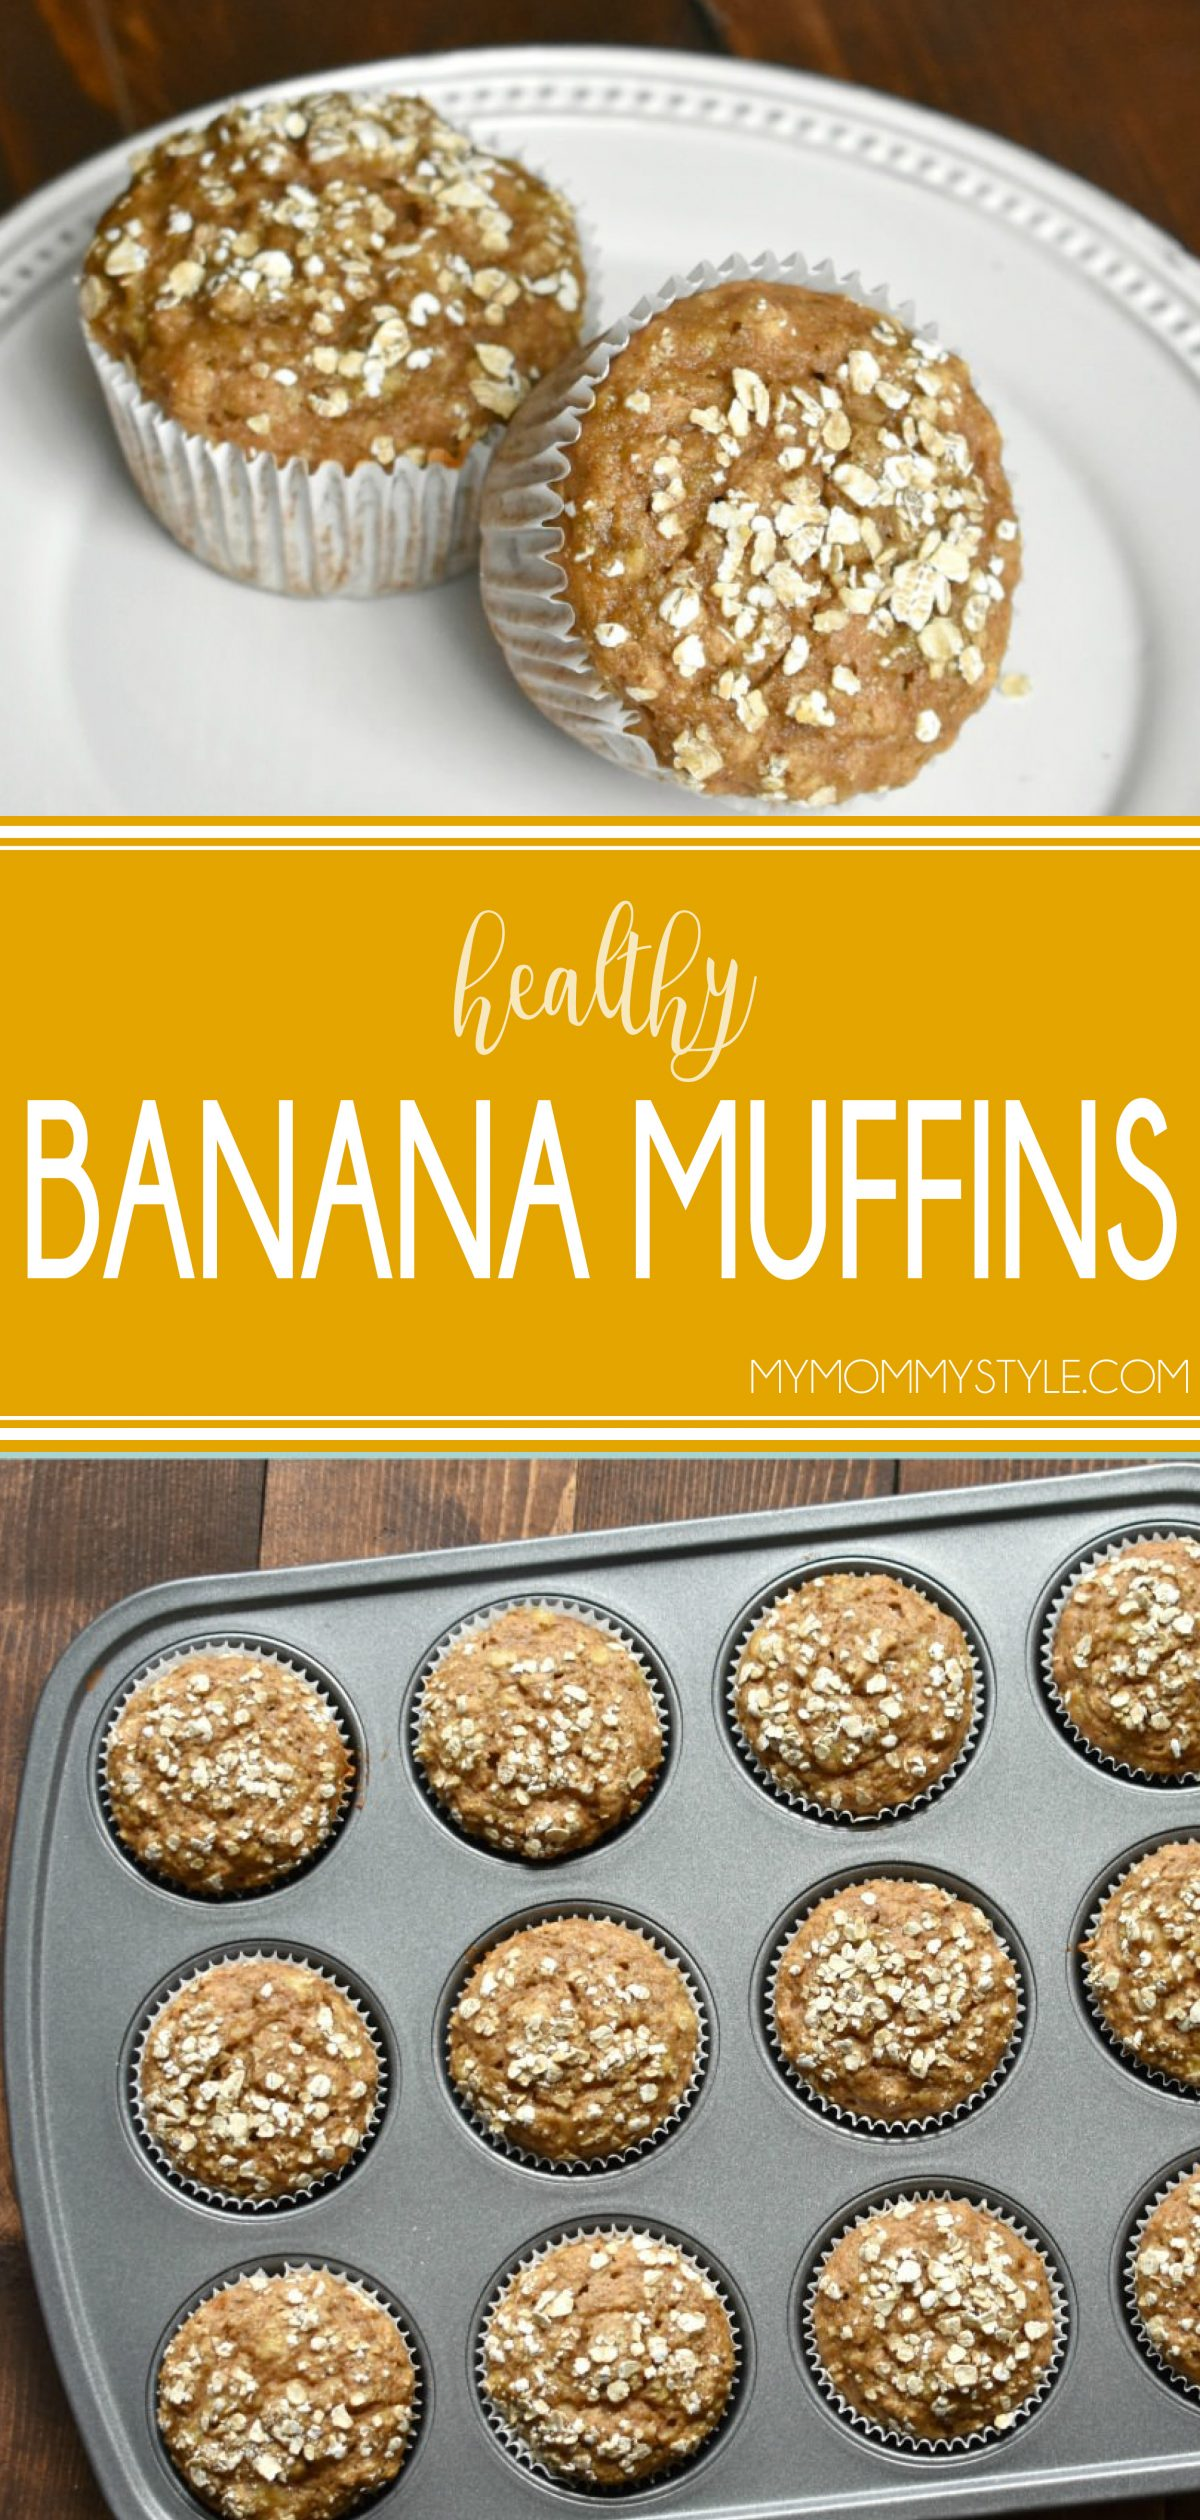 These banana muffins are made with less sugar, no oil, whole wheat flour and rolled oats. They have more fiber and are more filling and they have much less fat. via @mymommystyle